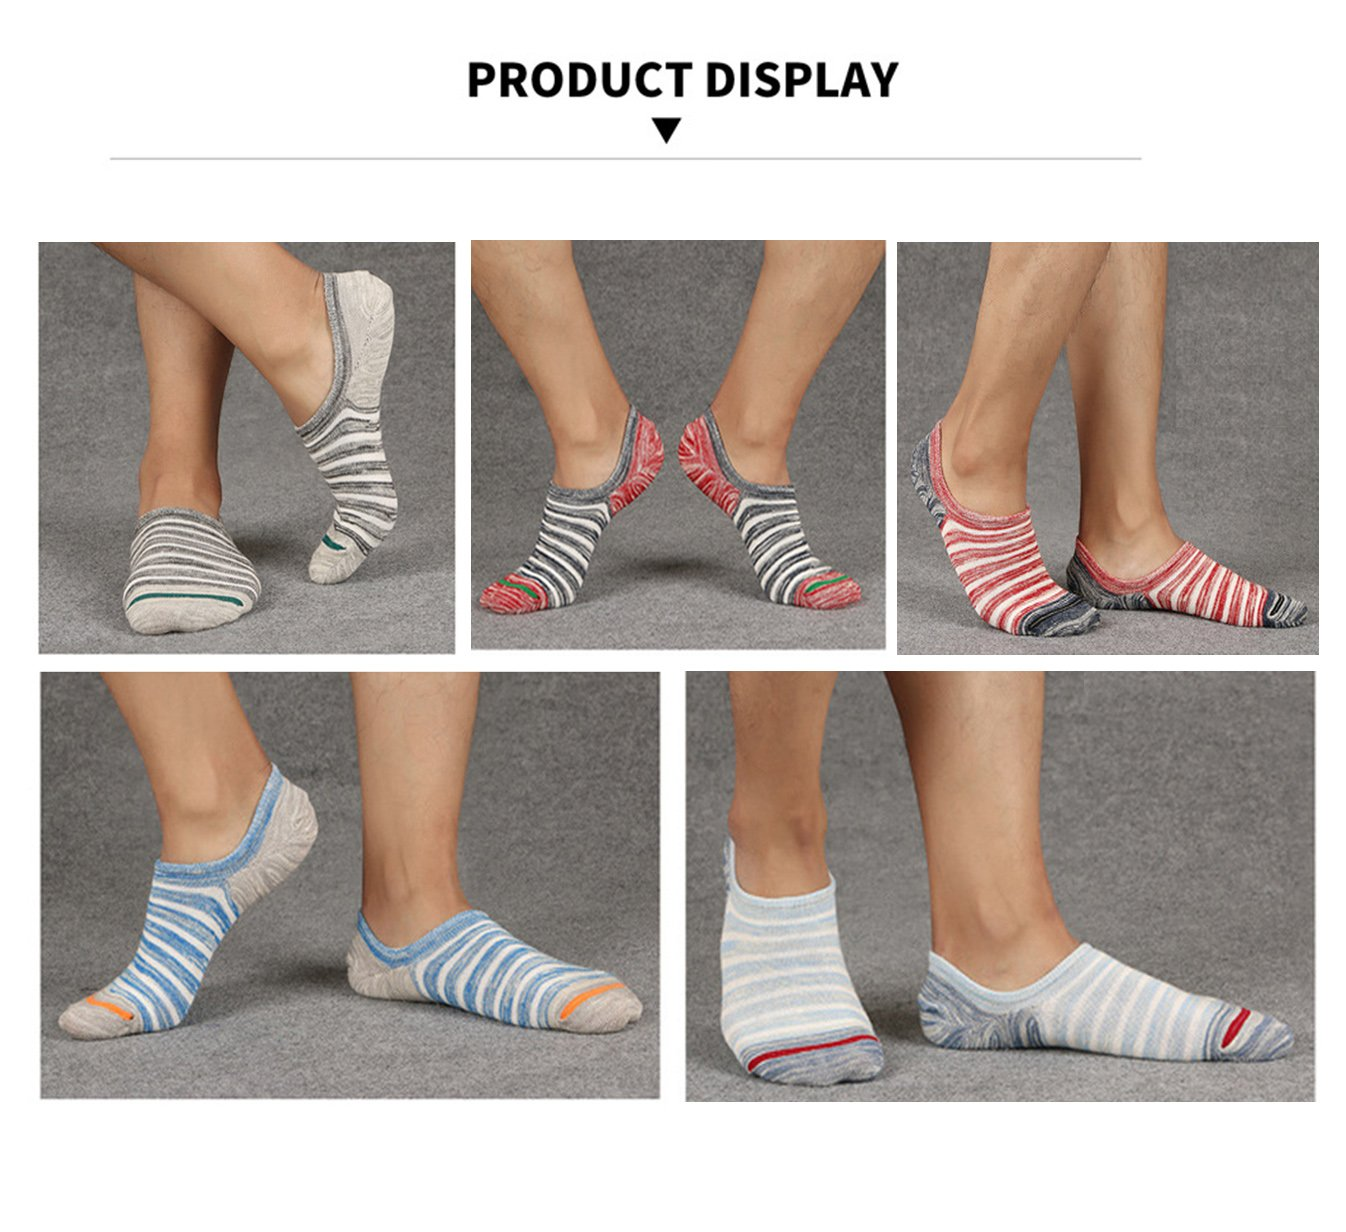 Spikerking Mens Stripe Low Cut Silicone Non slip Thin Socks 5 Pack,5 Pack-5 Color